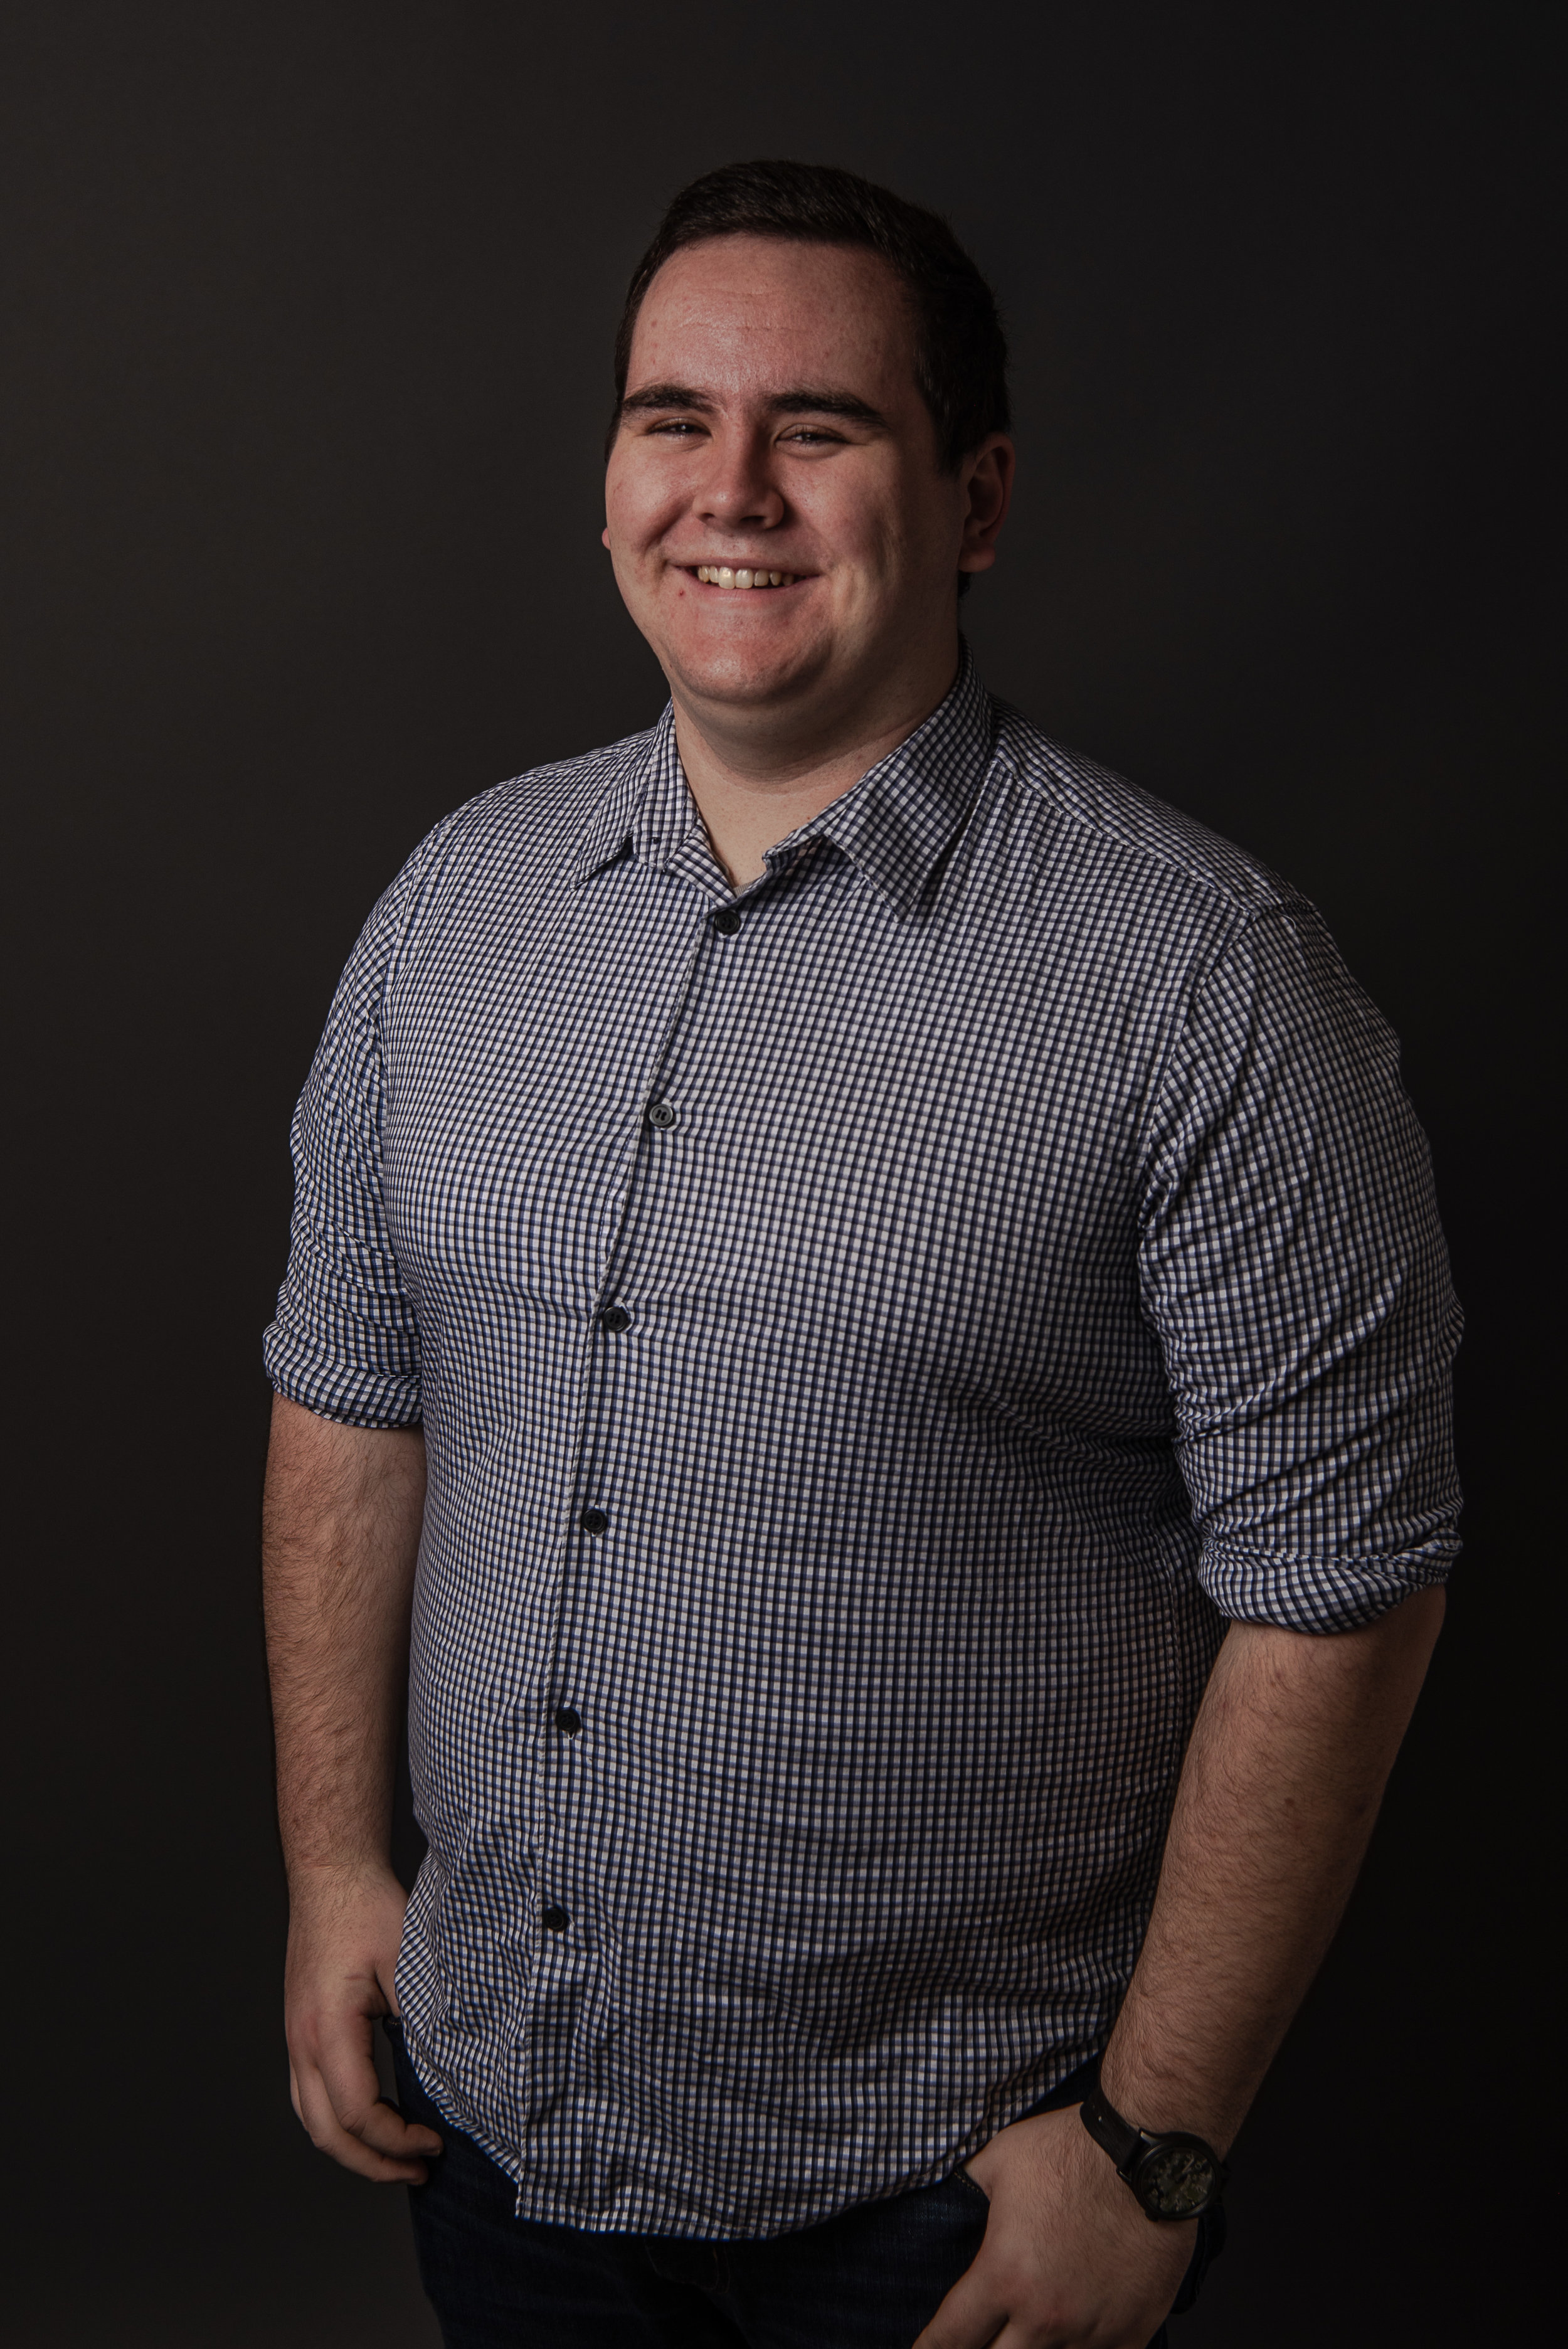 Ethan Badgley | Production & Editing Assistant